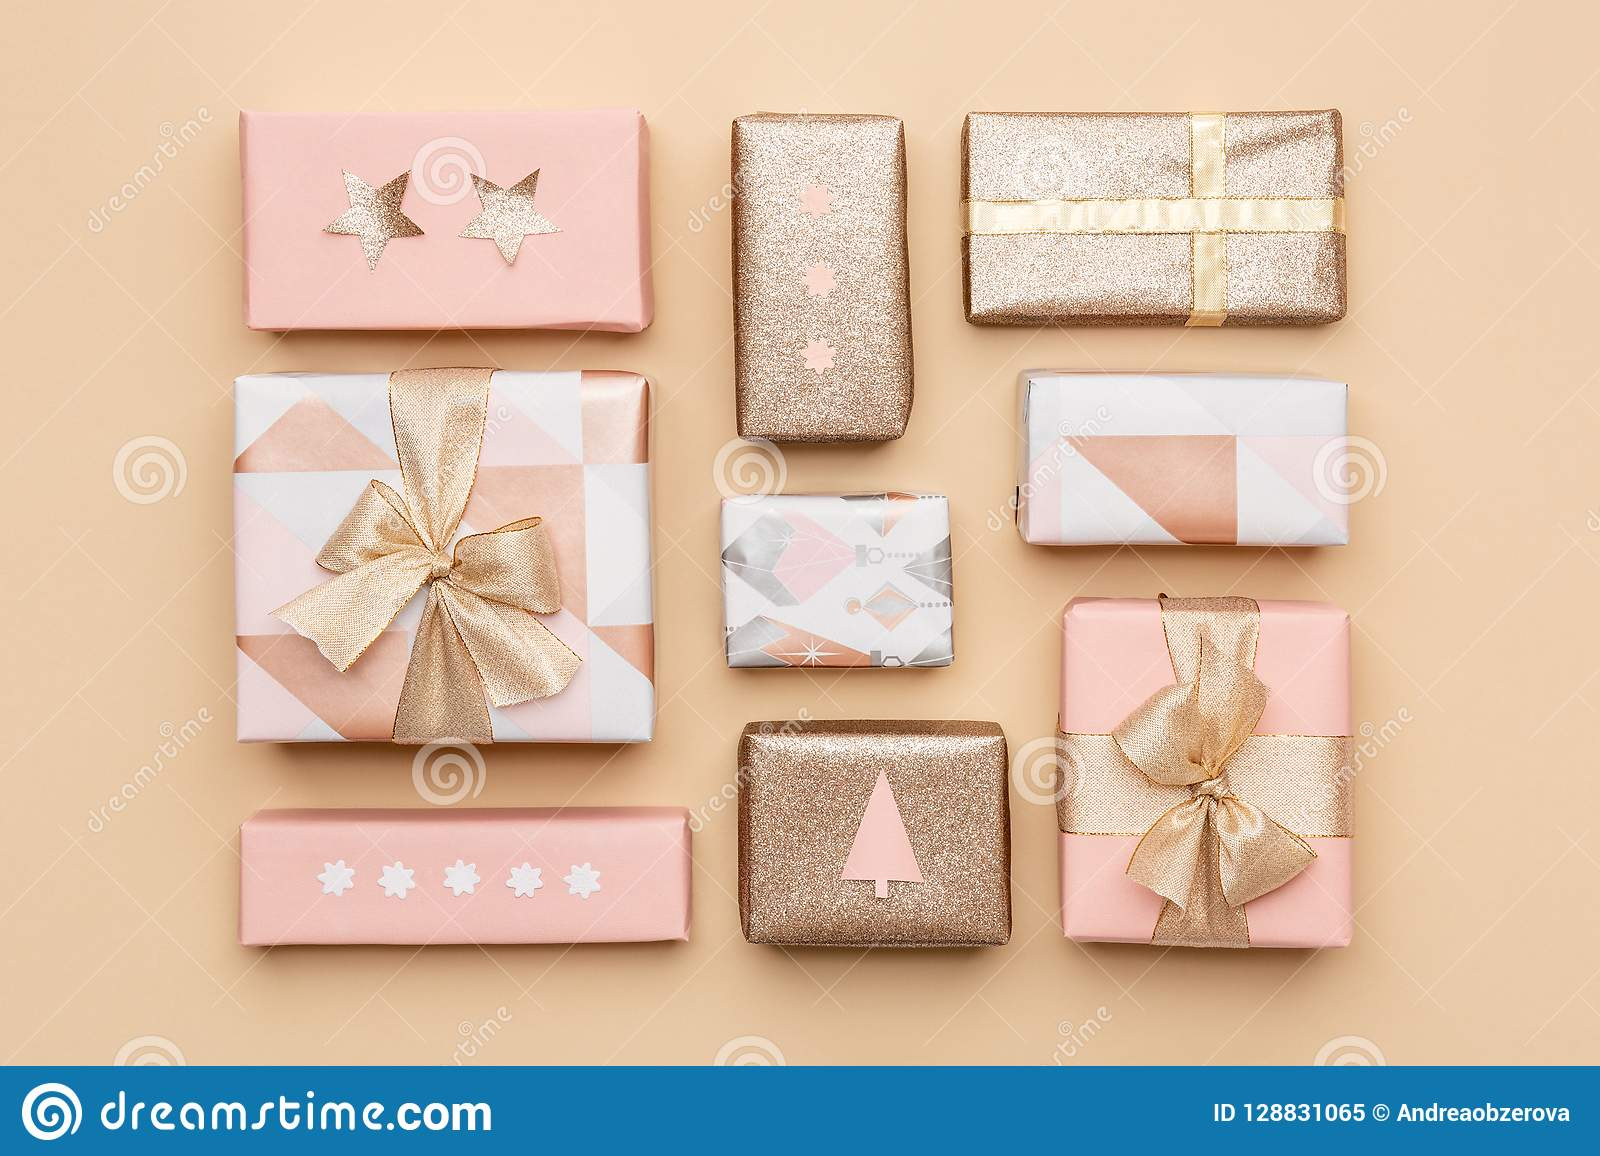 Gift wrapping composition. Beautiful nordic christmas gifts isolated on gold background. Pink and gold colored wrapped gift boxes.